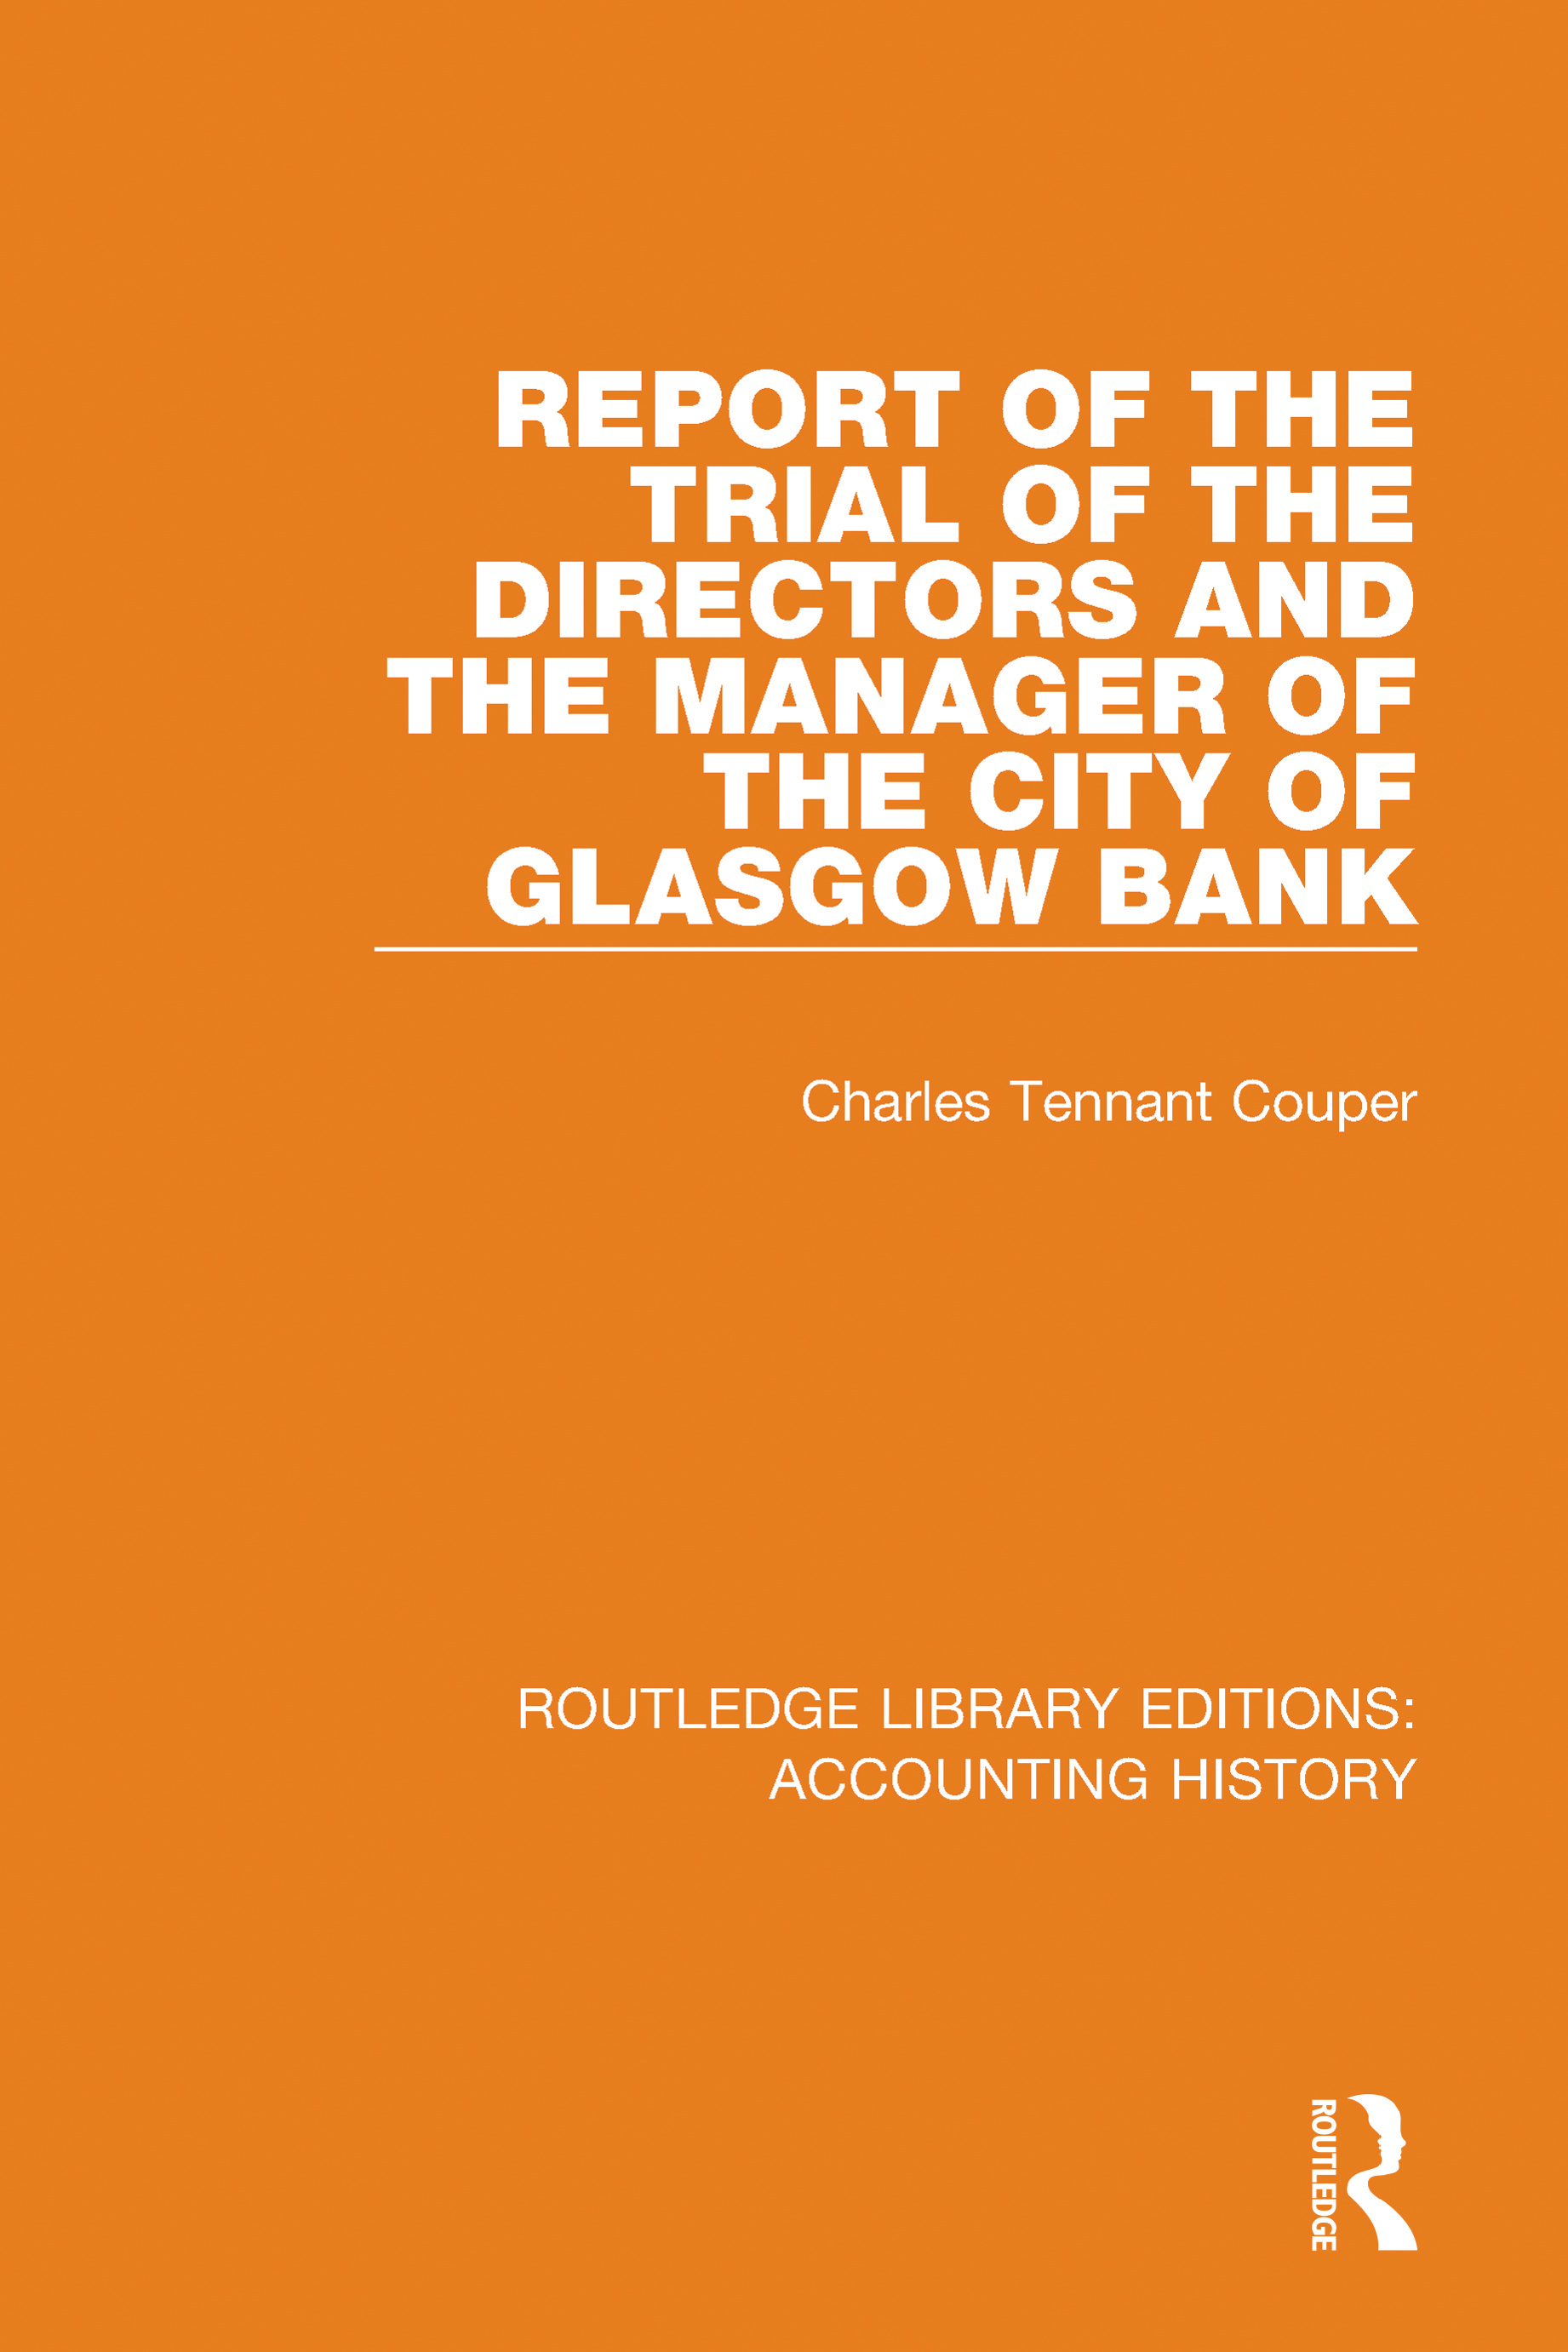 Report of the Trial of the Directors and the Manager of the City of Glasgow Bank